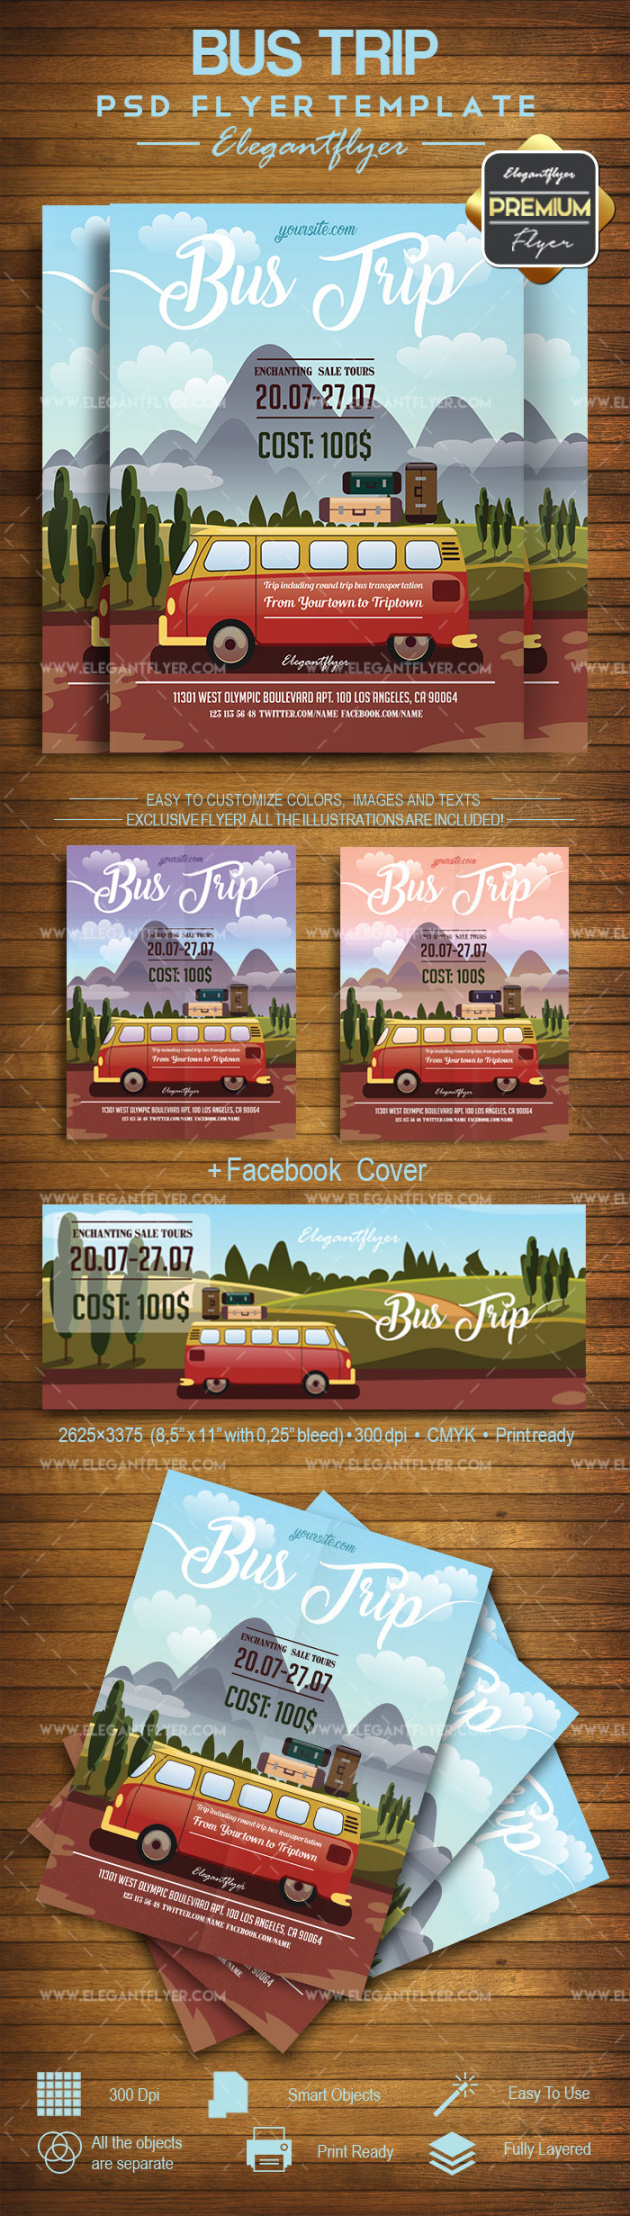 free bus trip flyer templates bus ride flyer template pdf